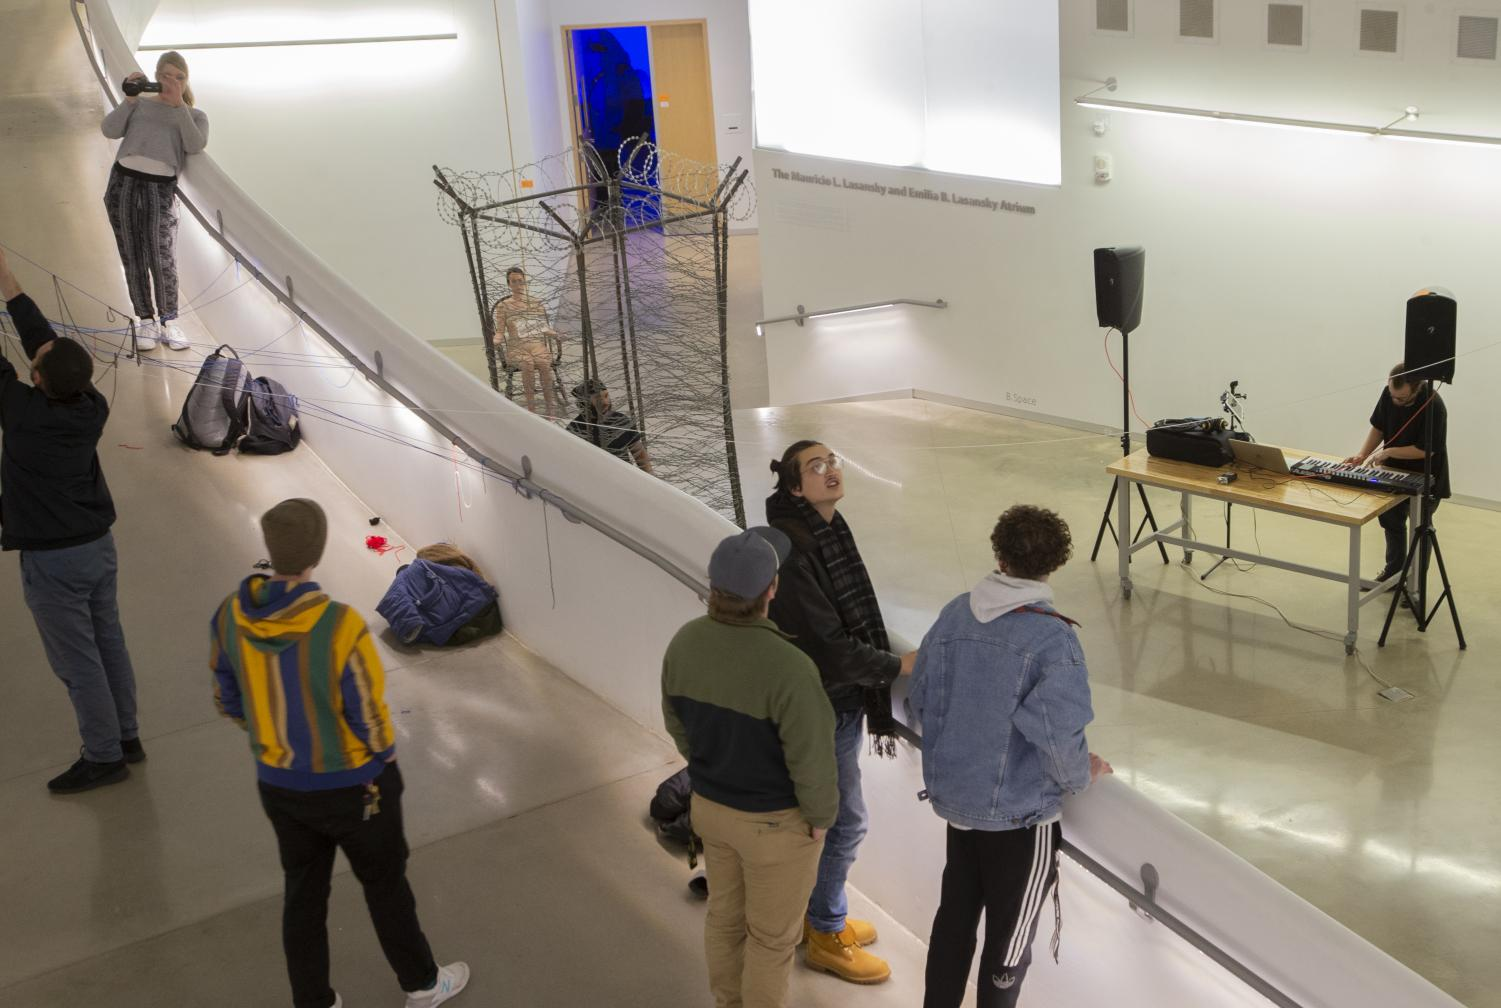 Attendees observes an art pieces at the Intermedia Open House on Thursday, Nov. 14, 2019. The Open Hose features 48 participants, 28 of who were intermedia undergraduate students. (Hayden Froehlich/The Daily Iowan)